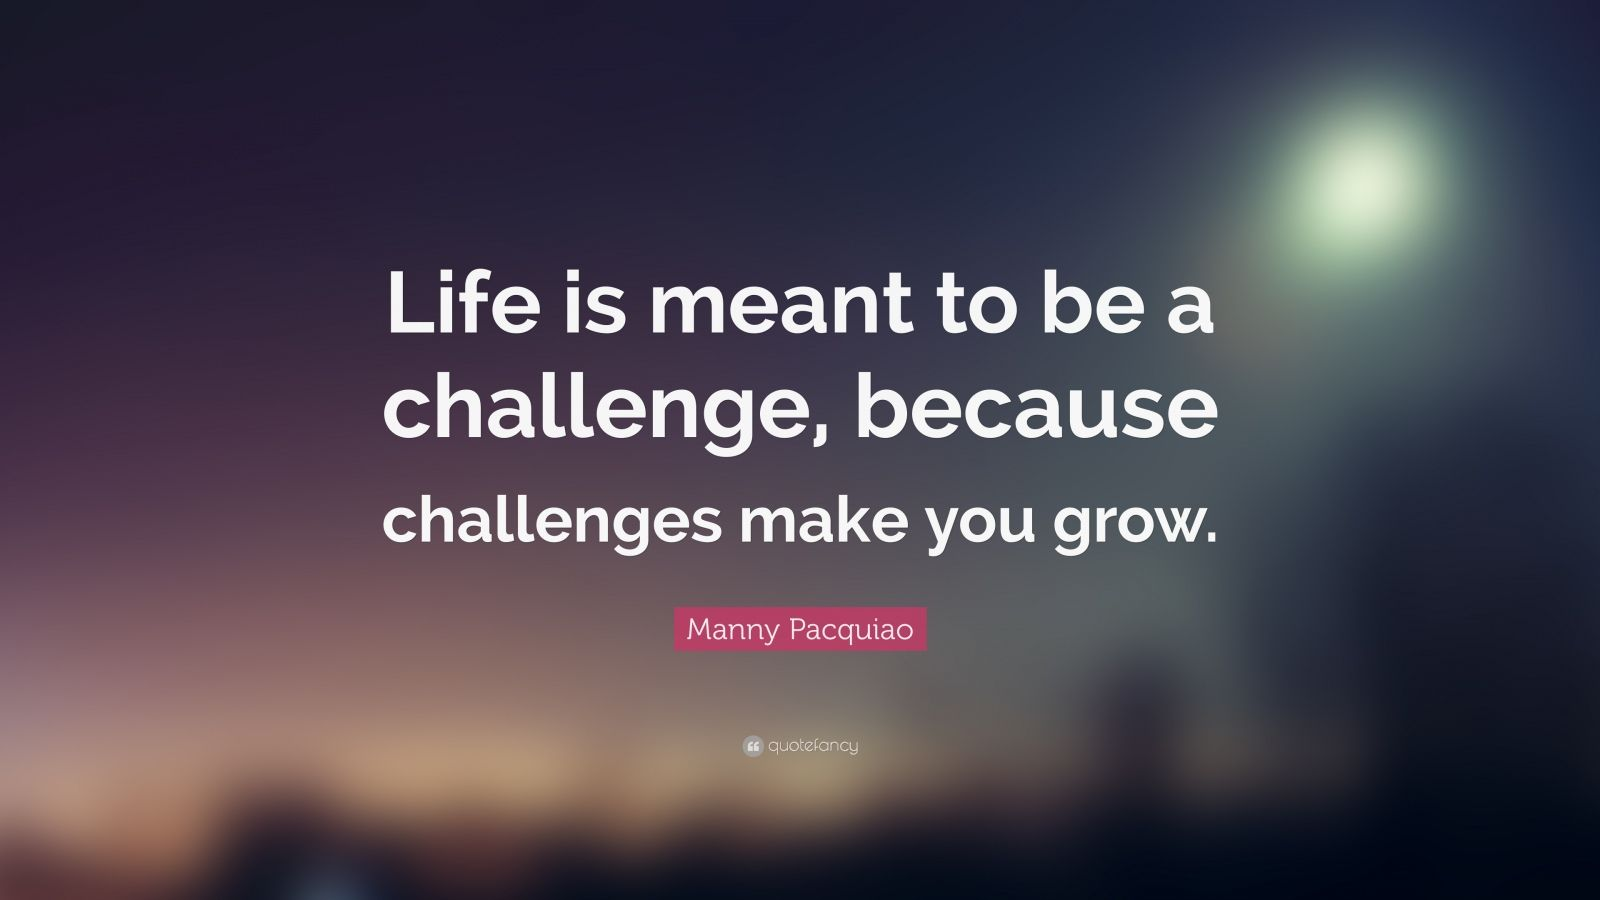 Manny Pacquiao Quotes Wallpaper Manny Pacquiao Quote Life Is Meant To Be A Challenge